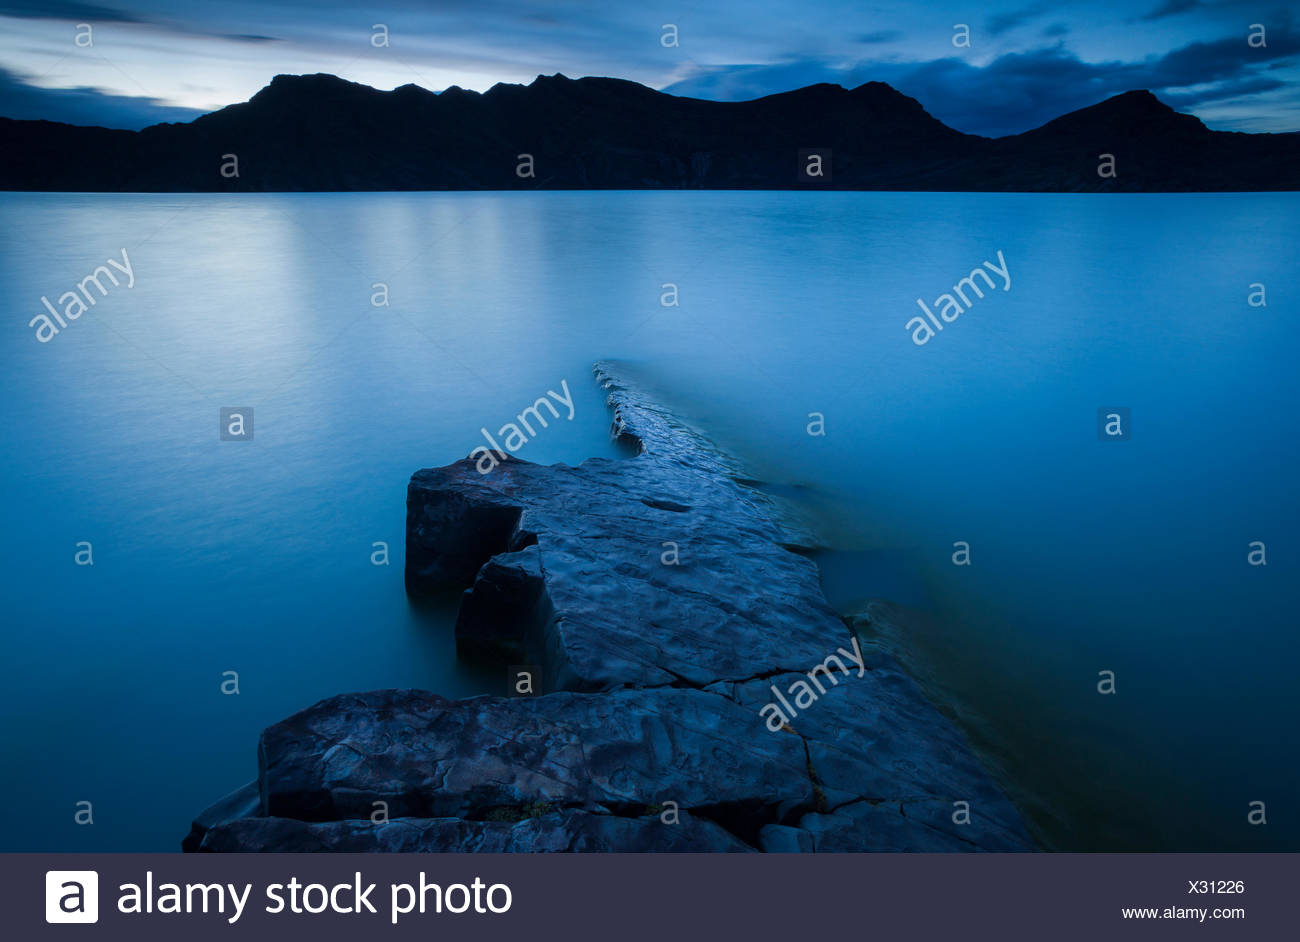 A long exposure along the shore of Lago Nordenskjöld in Torres del Paine. - Stock Image